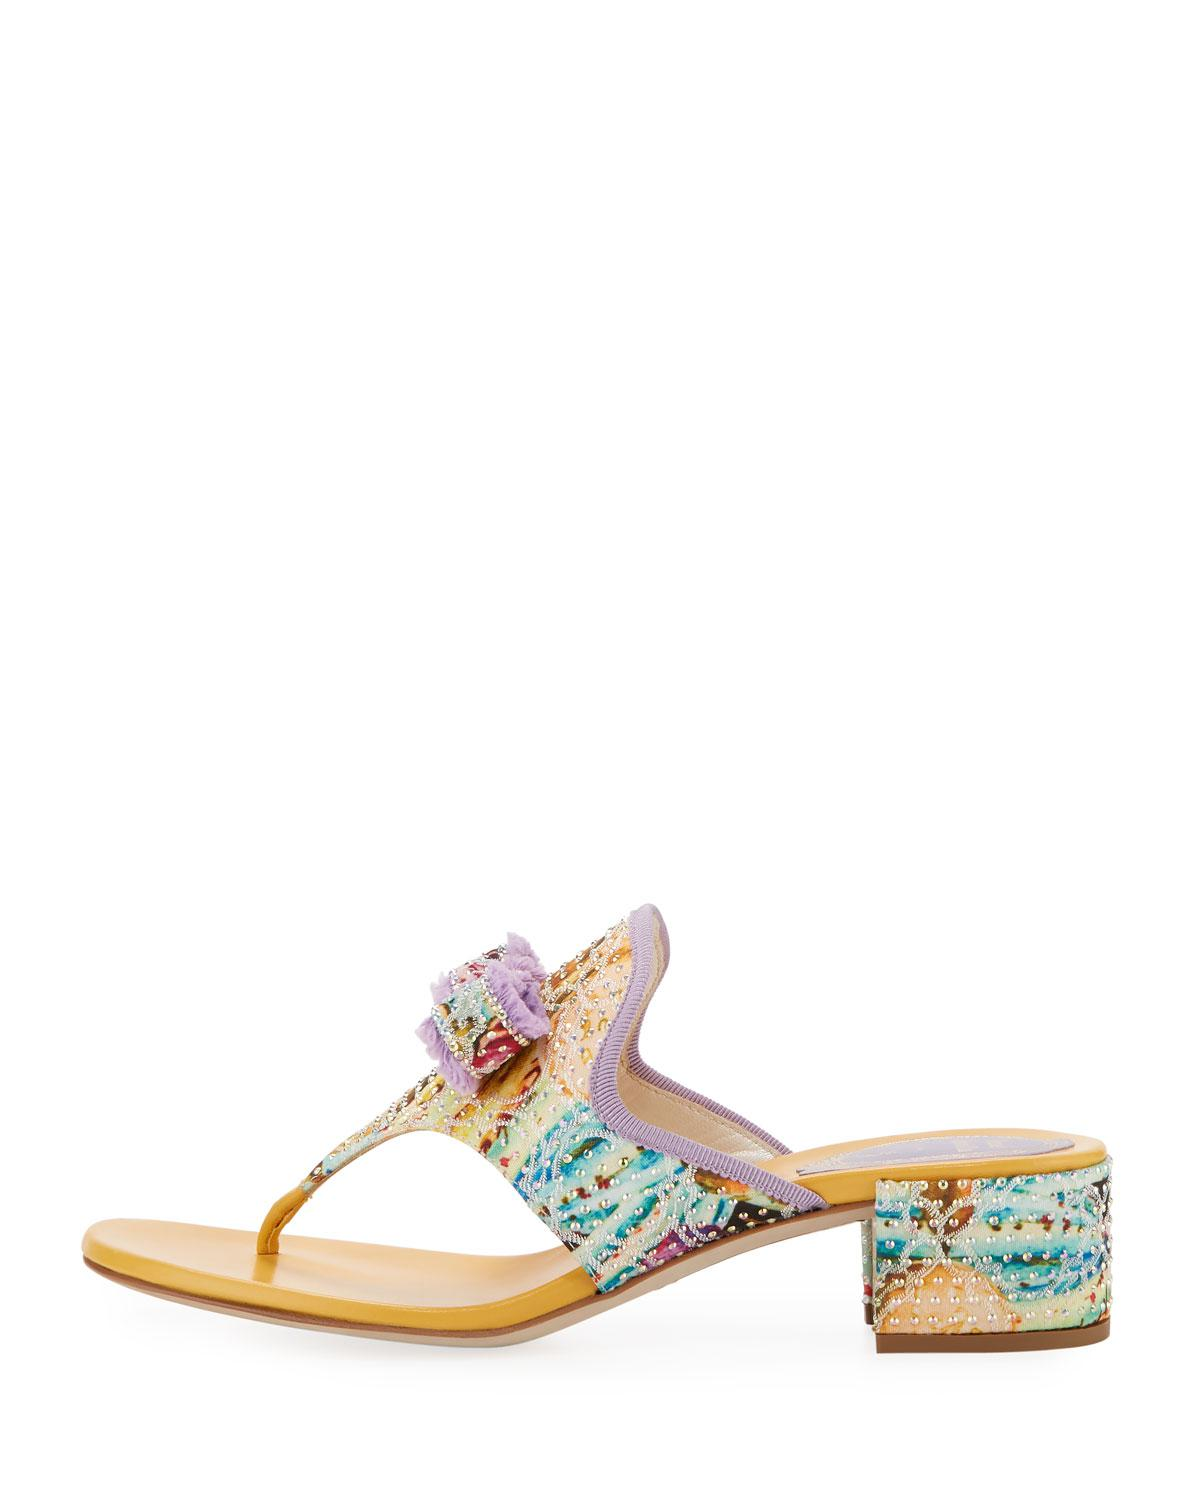 d8389490942beb Rene Caovilla Floral Thong Sandal With Bow in Yellow - Lyst